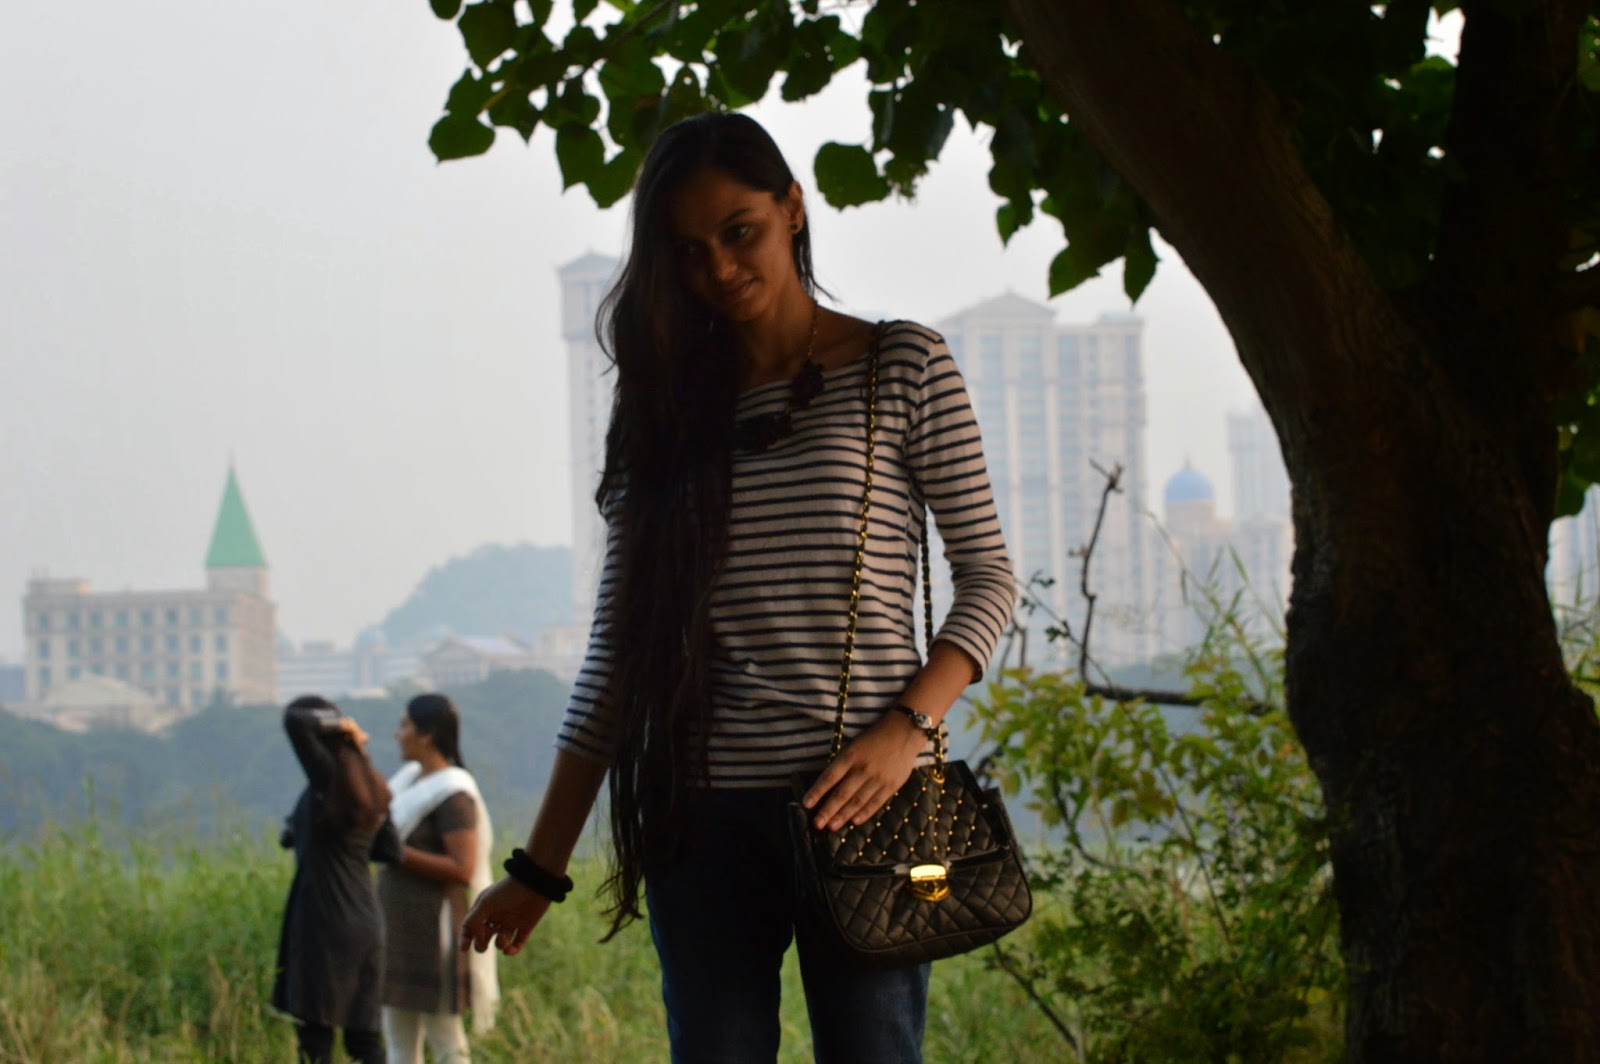 indian fashion blogger, mumbai fashion blog, personal style, look for less, H&M striped tshirt, casuals, how to wear casuals to work, what to wear to work on friday, mumbai streetstyle